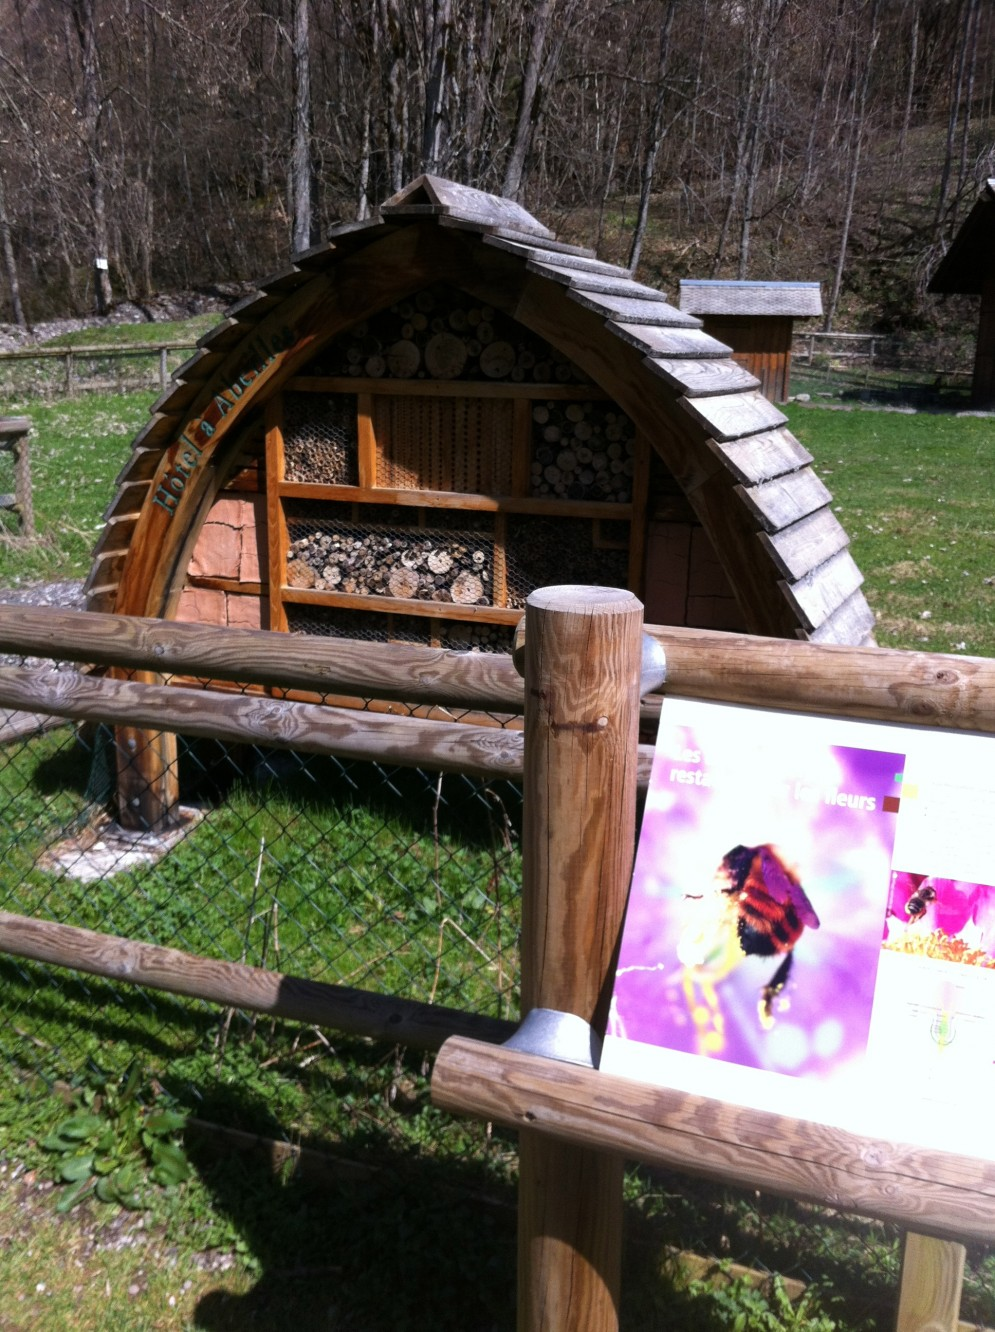 It's no Hotel L'aubergade but even the Bees have a hotel in Morzine!